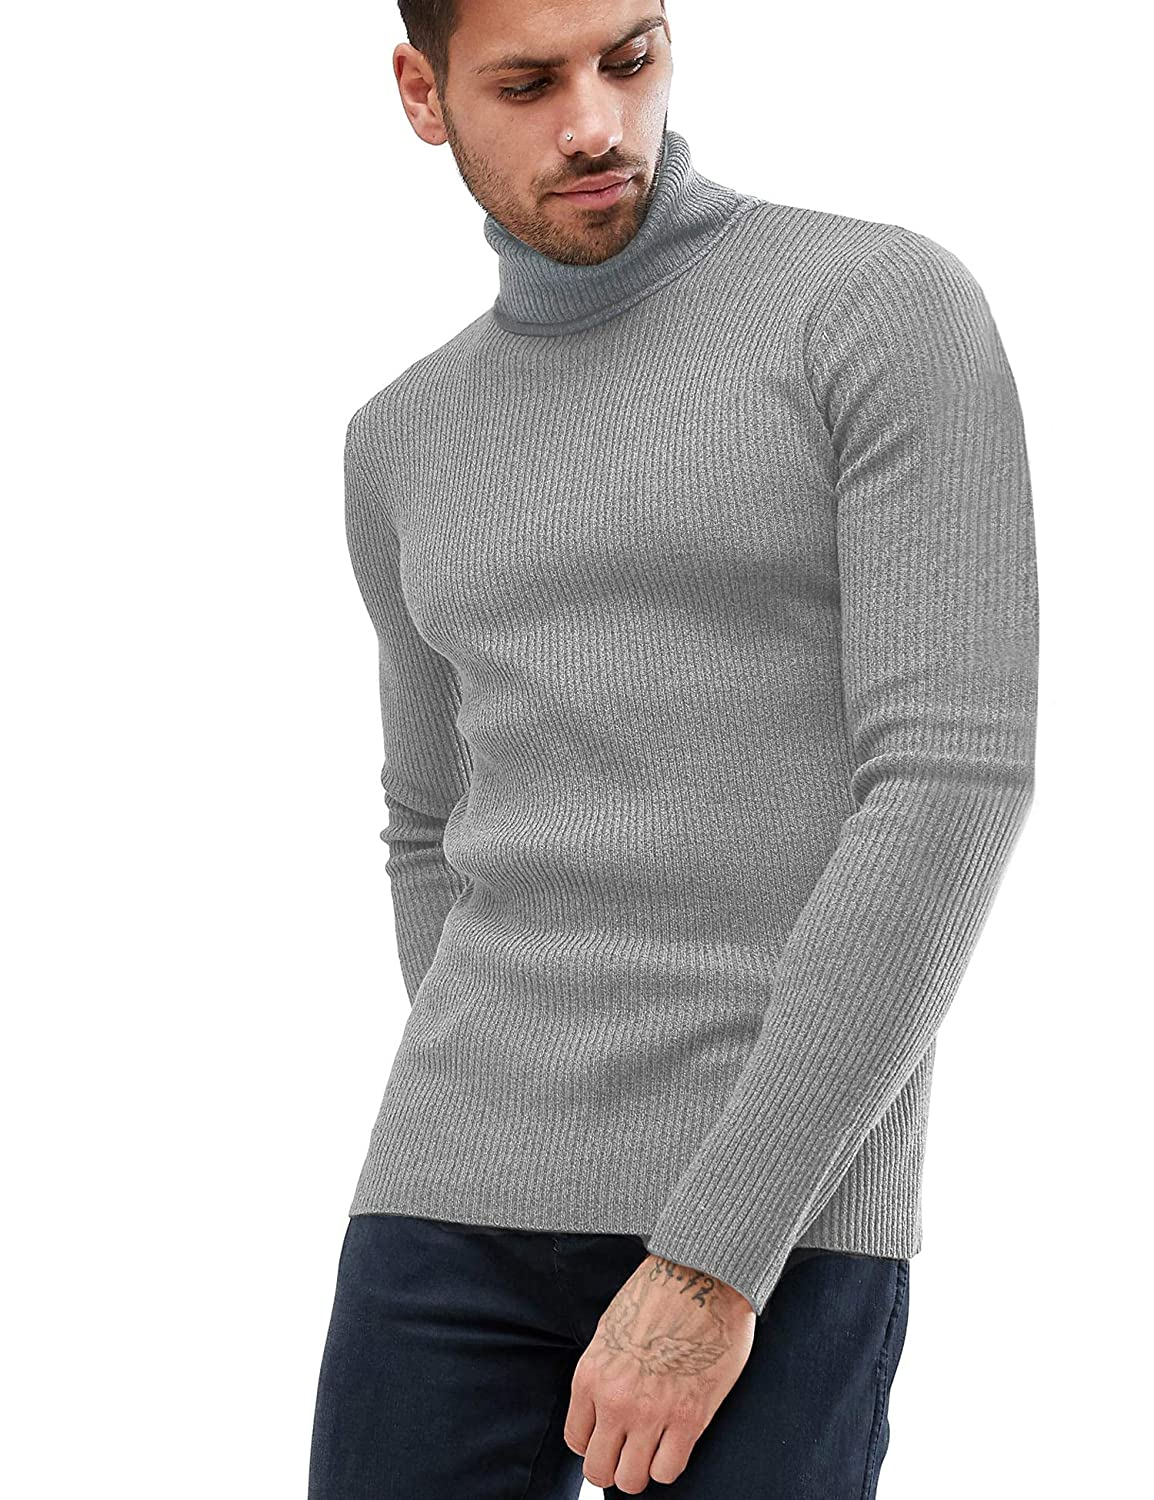 Daupanzees Mens Casual Basic Thermal Turtleneck Slim Fit Pullover Thermal Sweaters